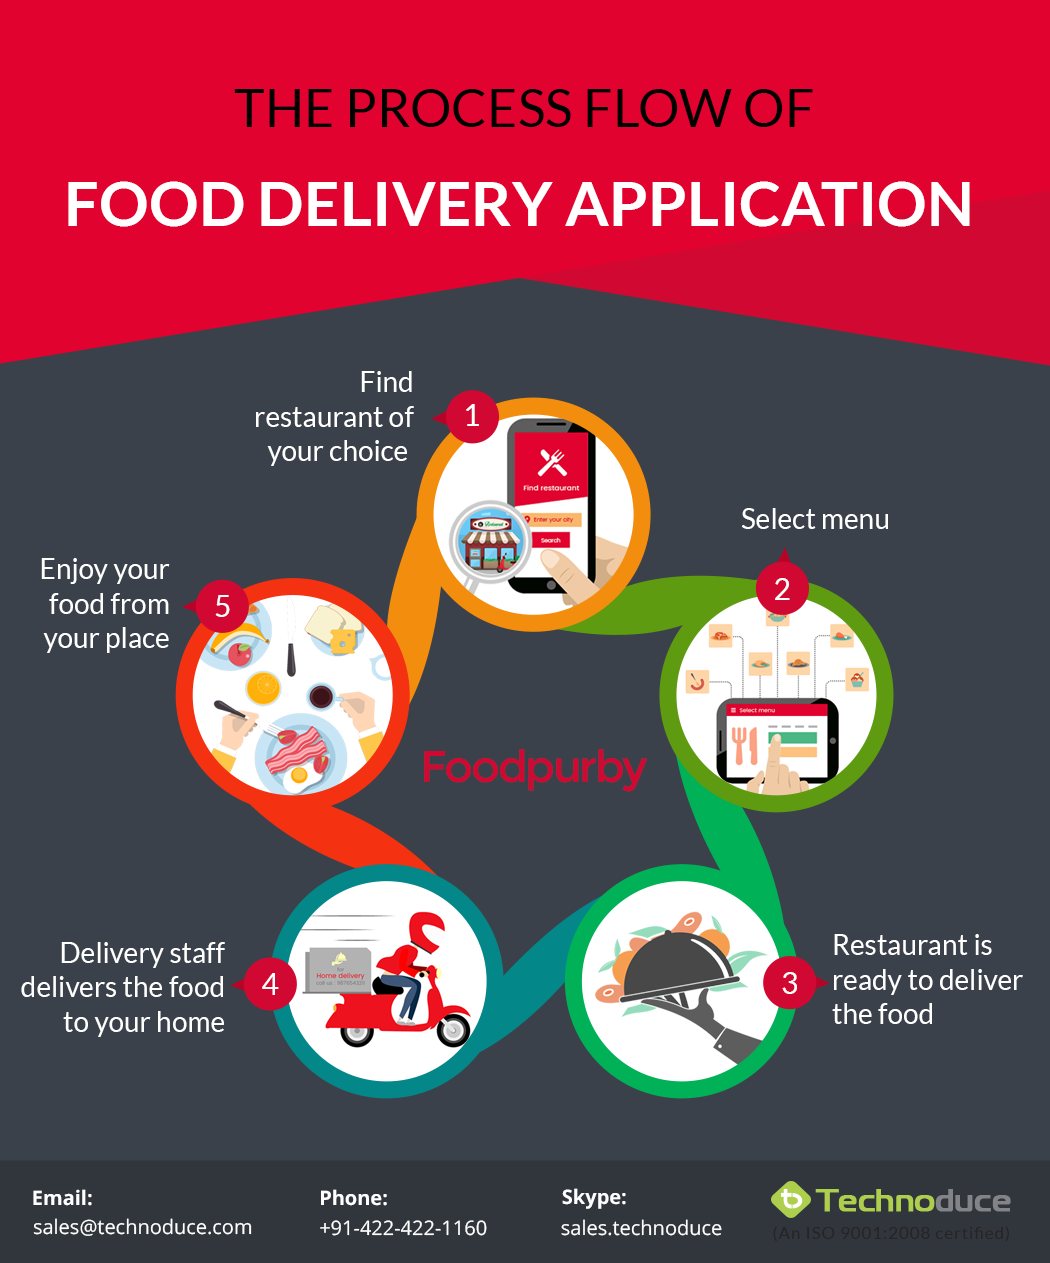 How to get your restaurant on top of food delivery service